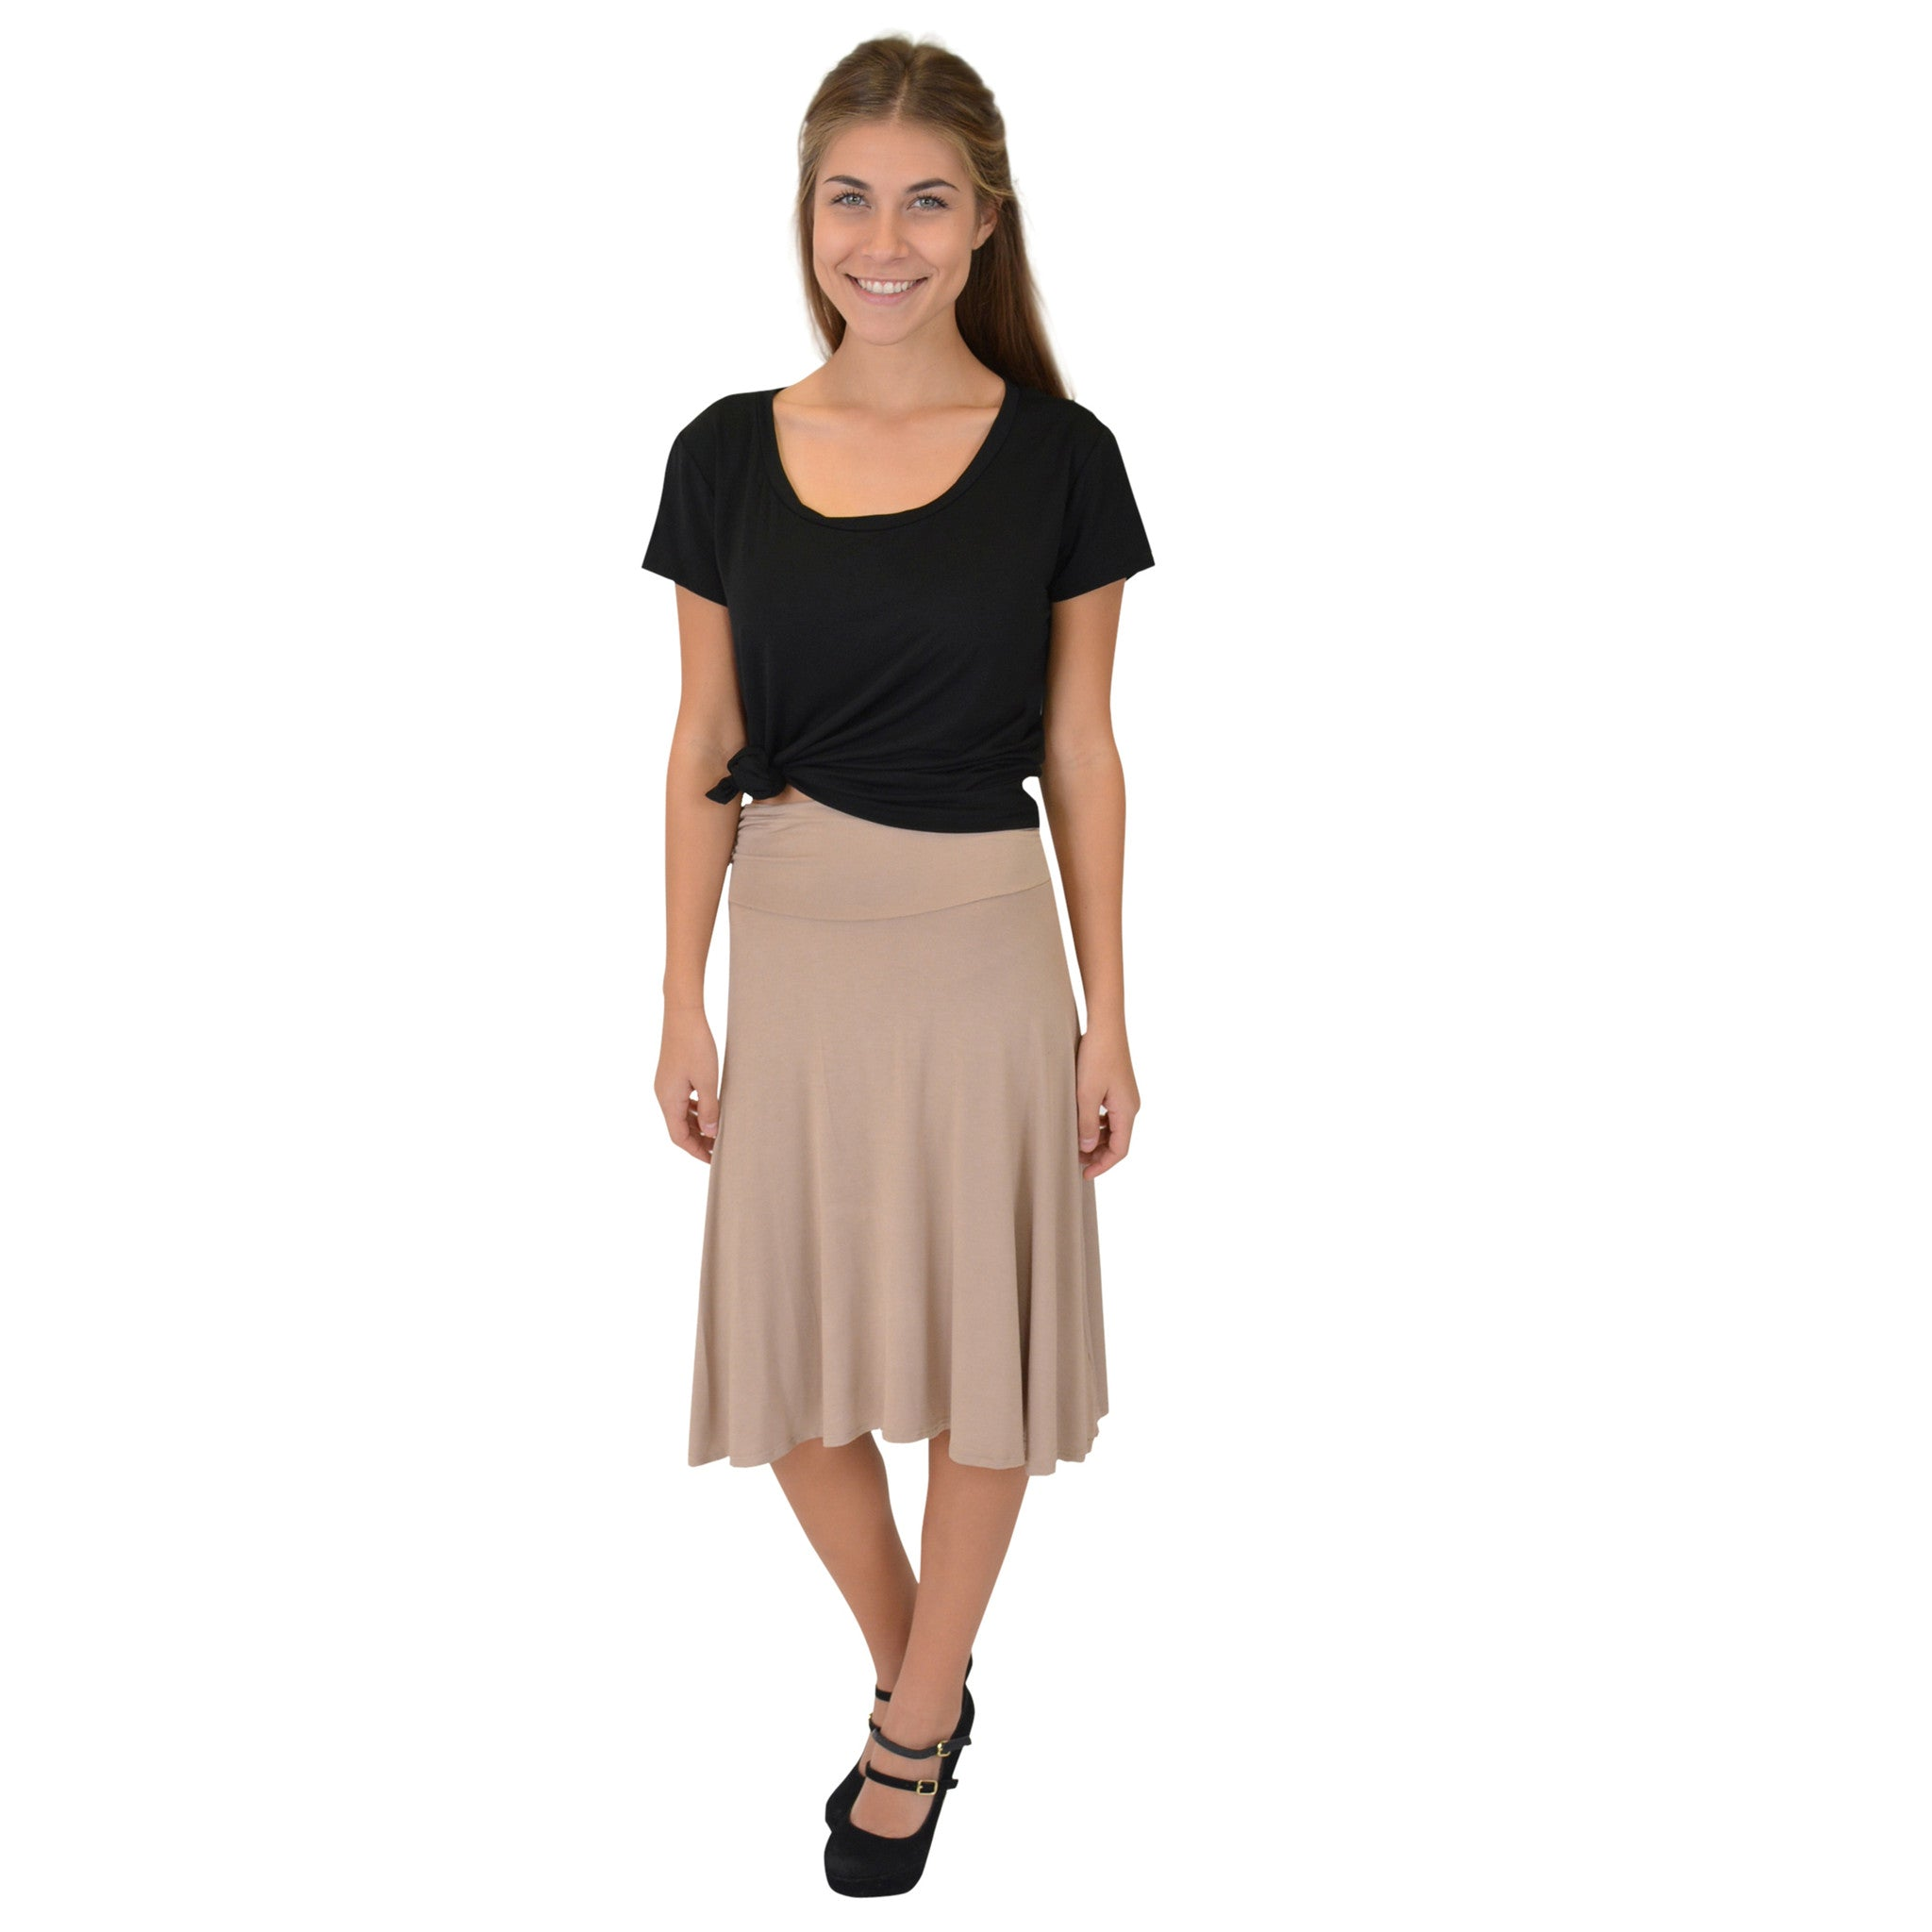 Women's Knee Length Flowy Skirt